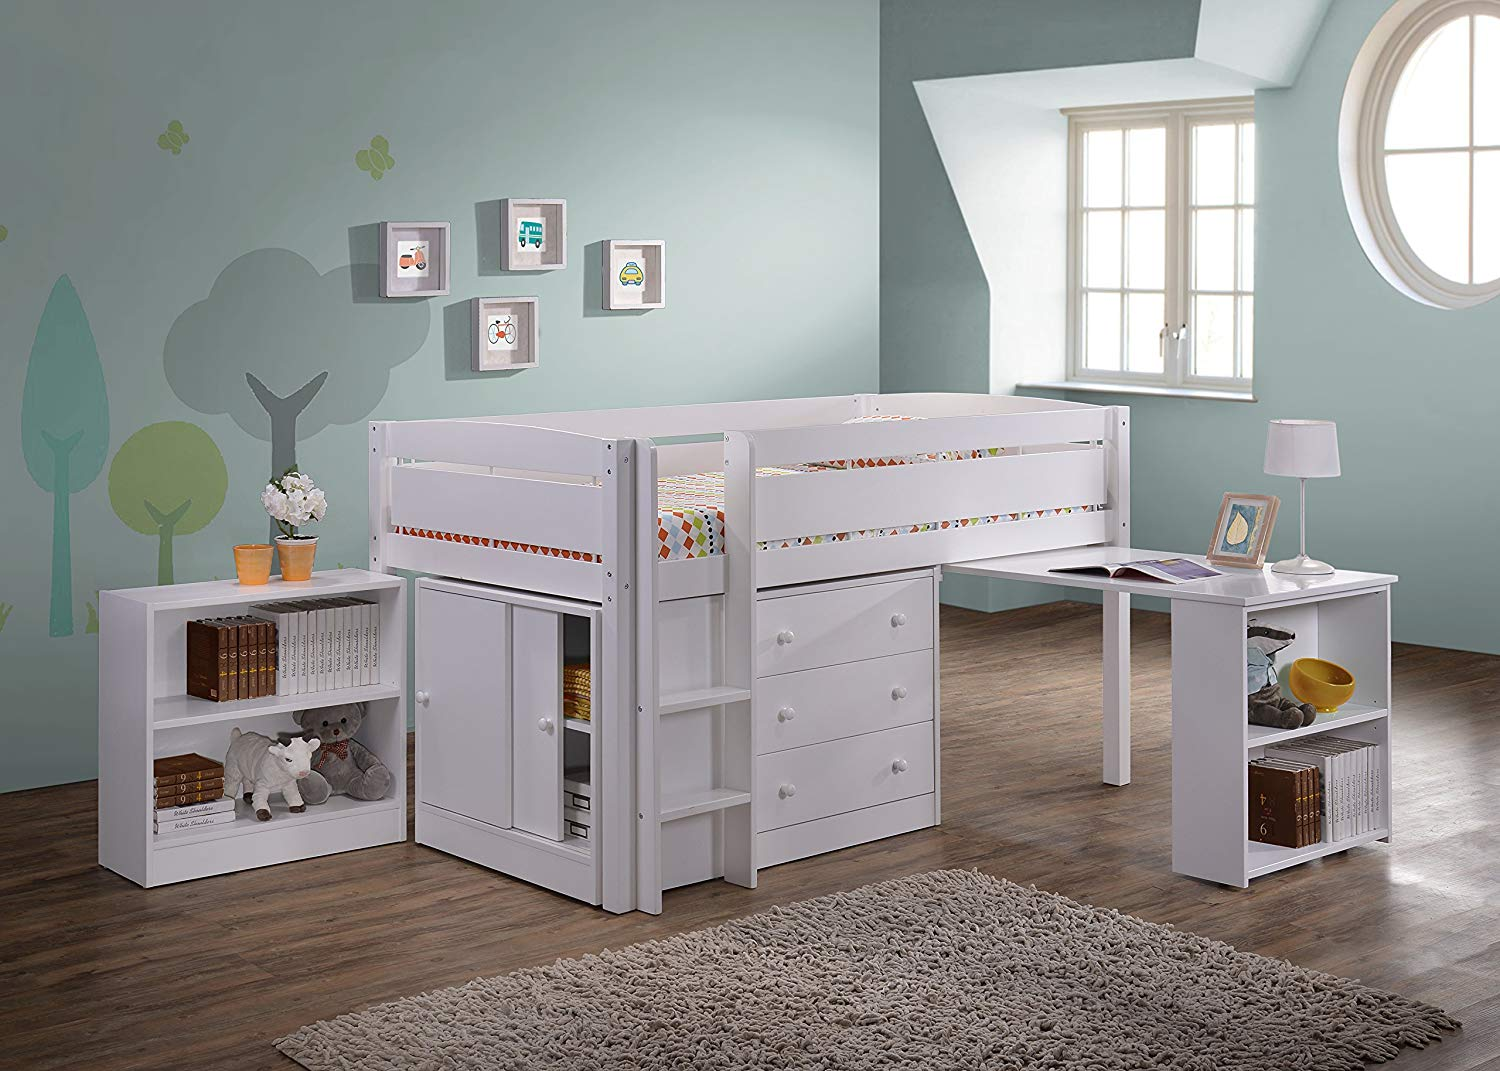 Loft Beds amazon.com: Canwood Whistler Junior Loft Bed, White: Kitchen & Dining Room WDZZHVF